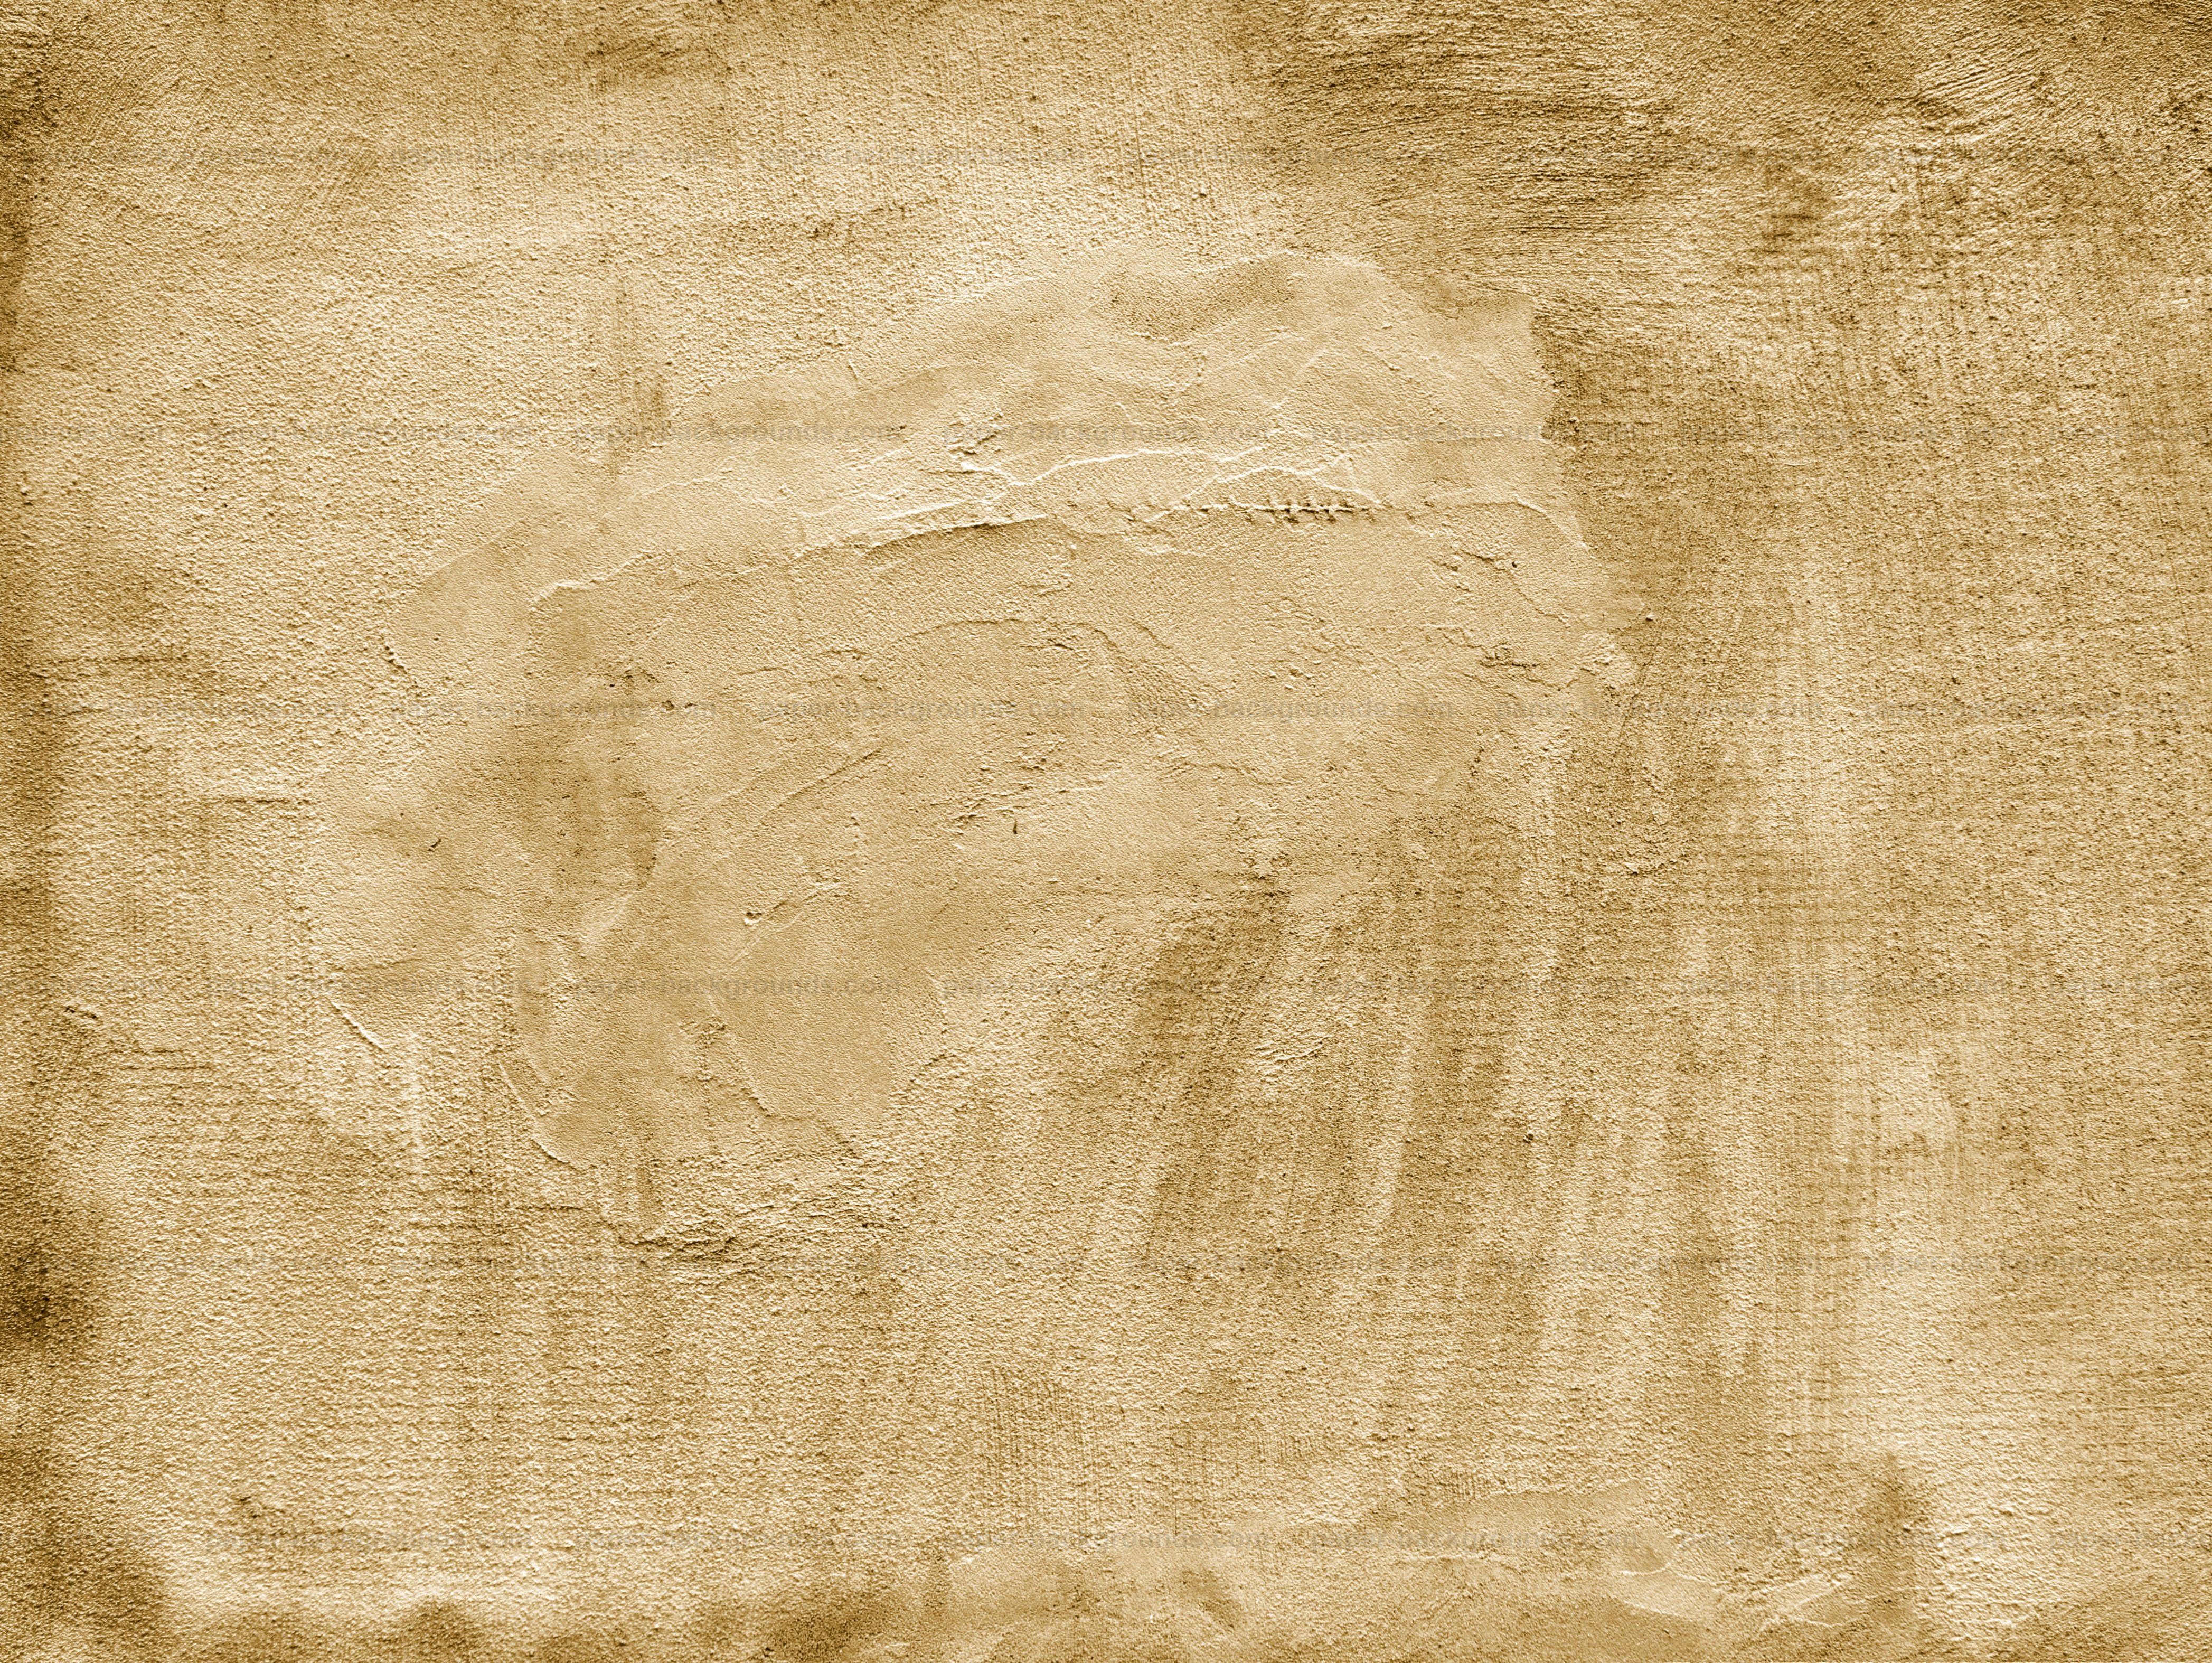 Textured Paper Background Wall background texture,